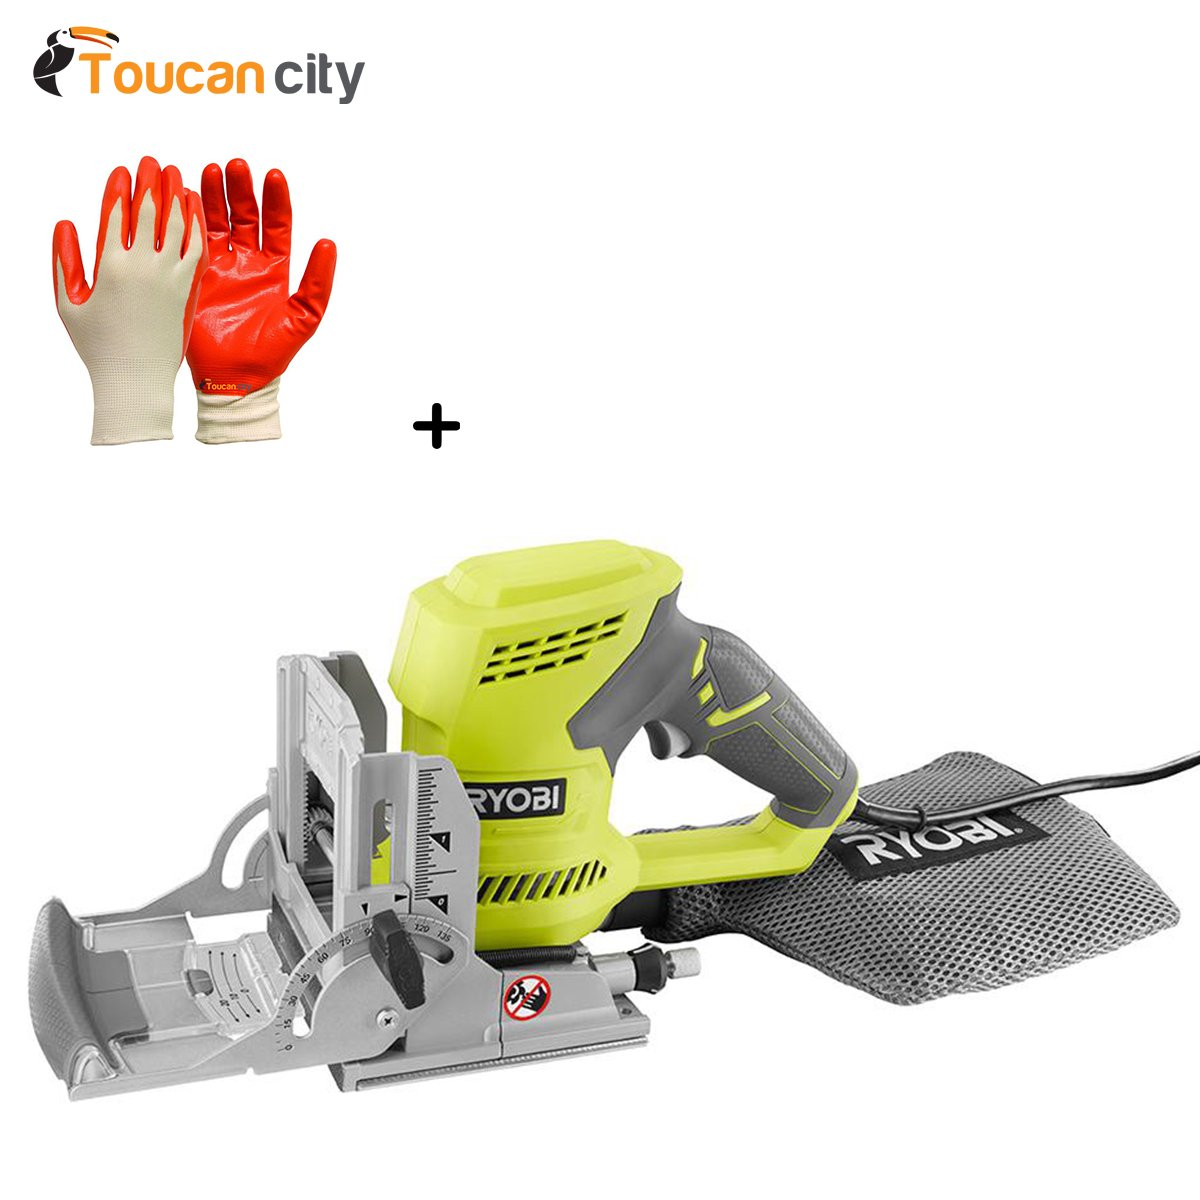 Ryobi 6 Amp AC Biscuit Joiner Kit with Dust Collector and Bag JM83K and Toucan City Nitrile Dip Gloves(5-Pack)